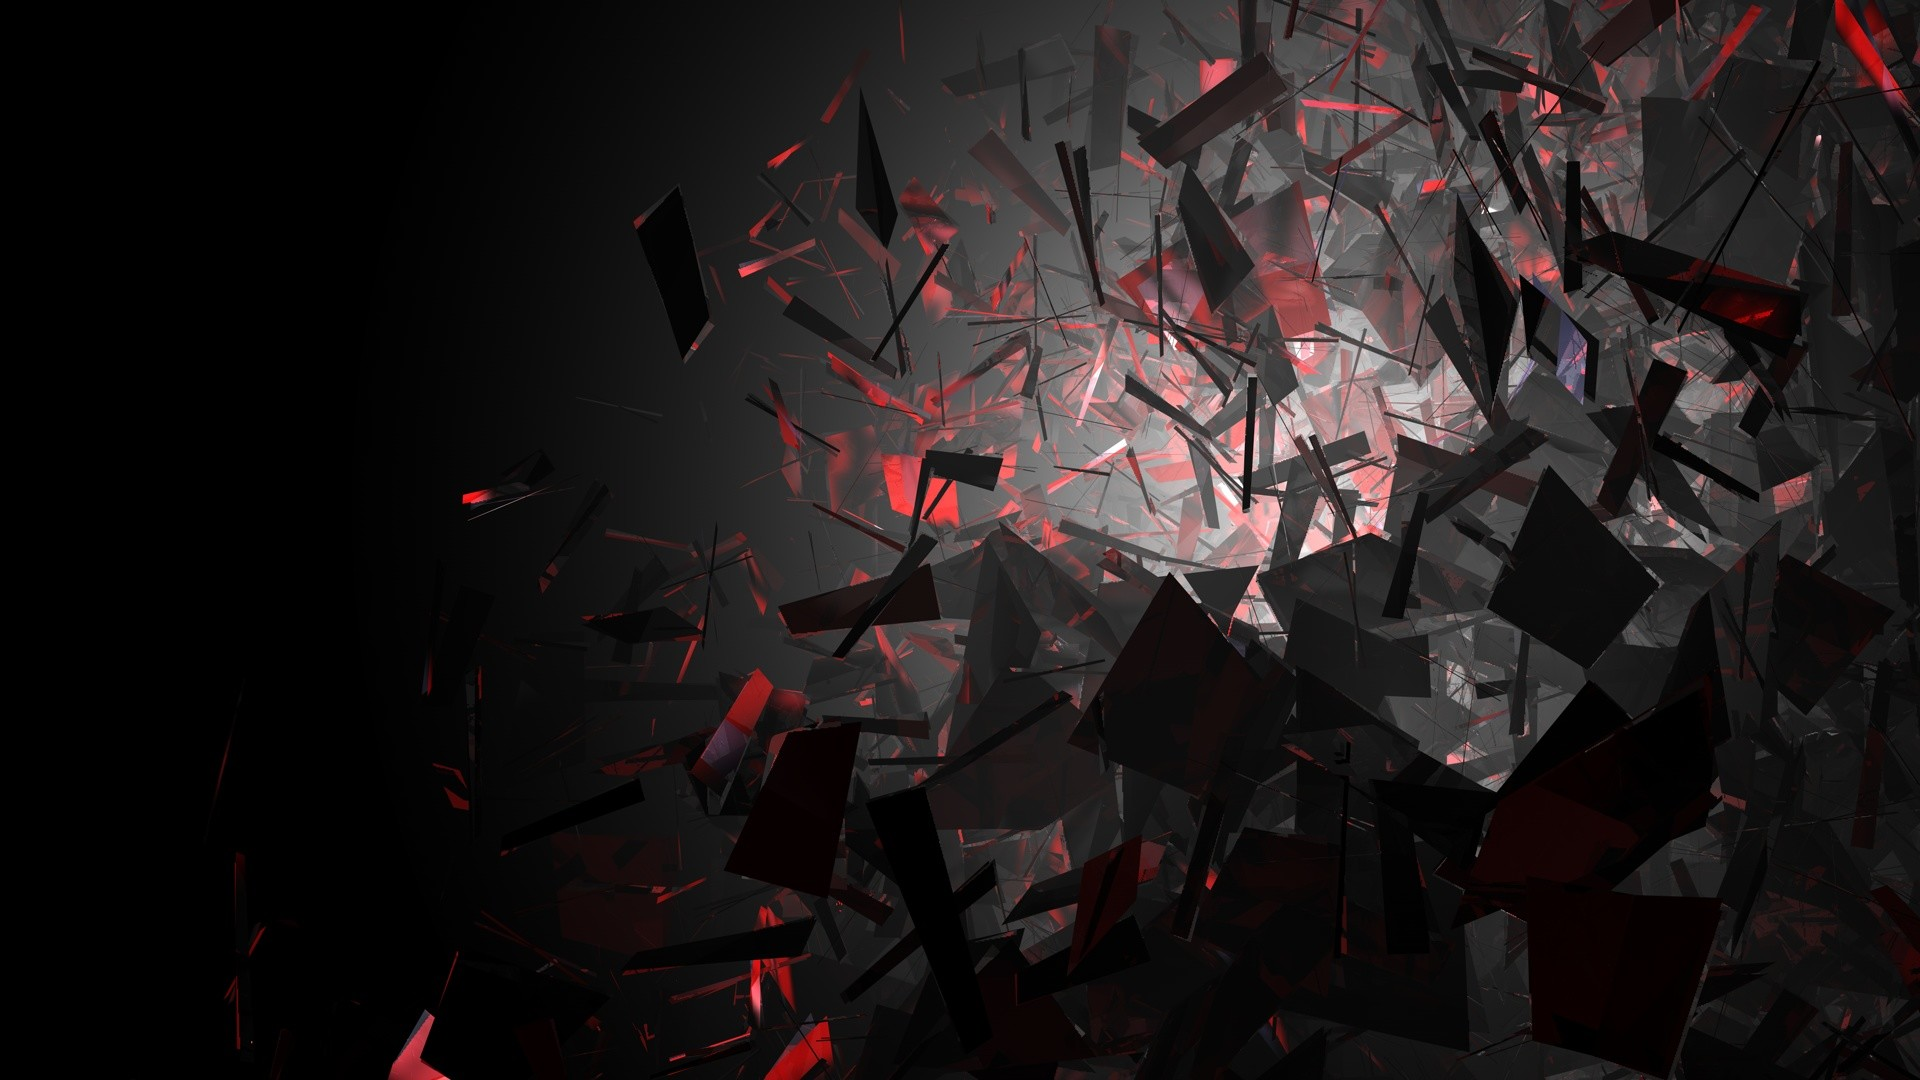 1920x1080 Black Dark Abstract 3D Shards Glass Red Wallpapers HD Desktop And Mobile Backgrounds